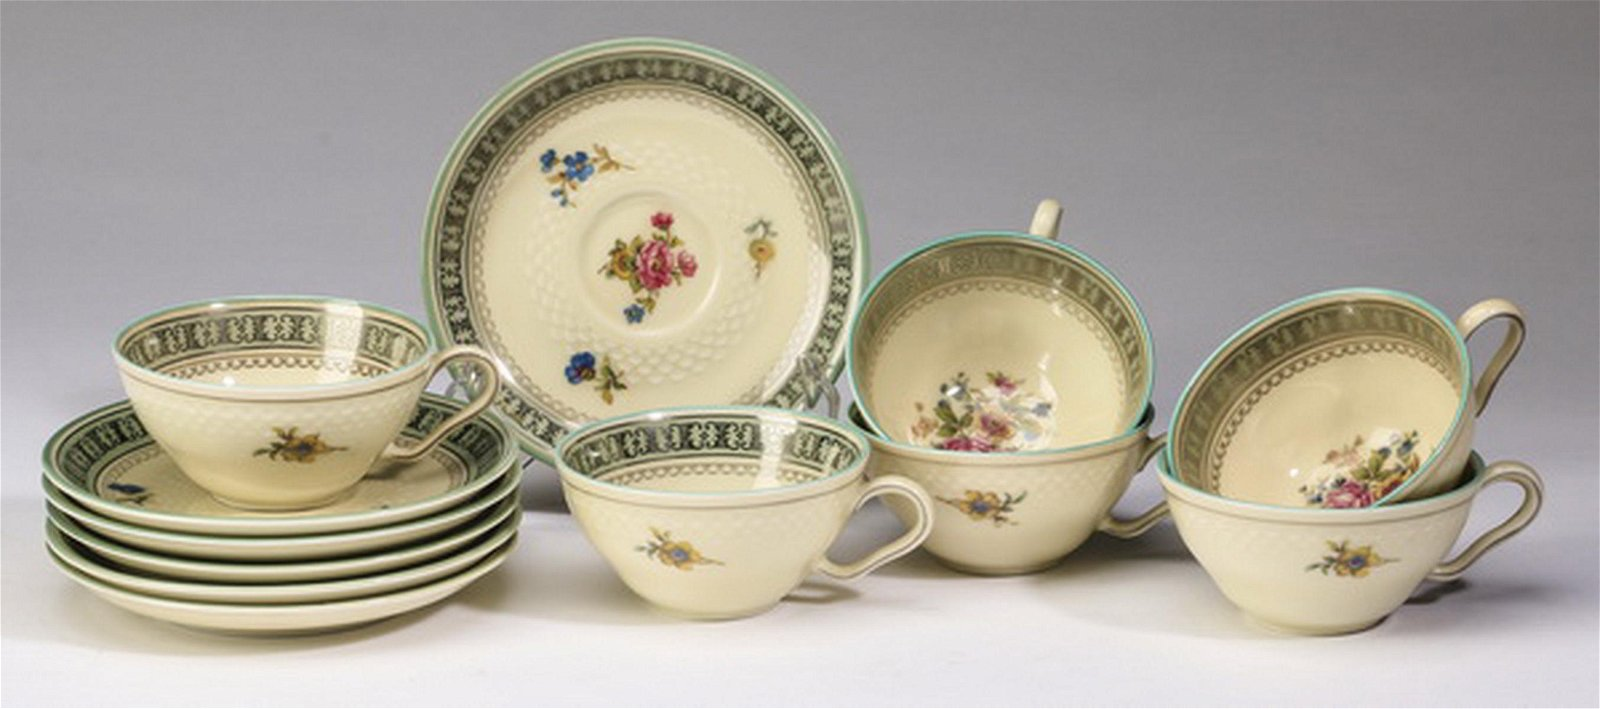 Six espresso cups and saucers, Thomas Ivory, Germany